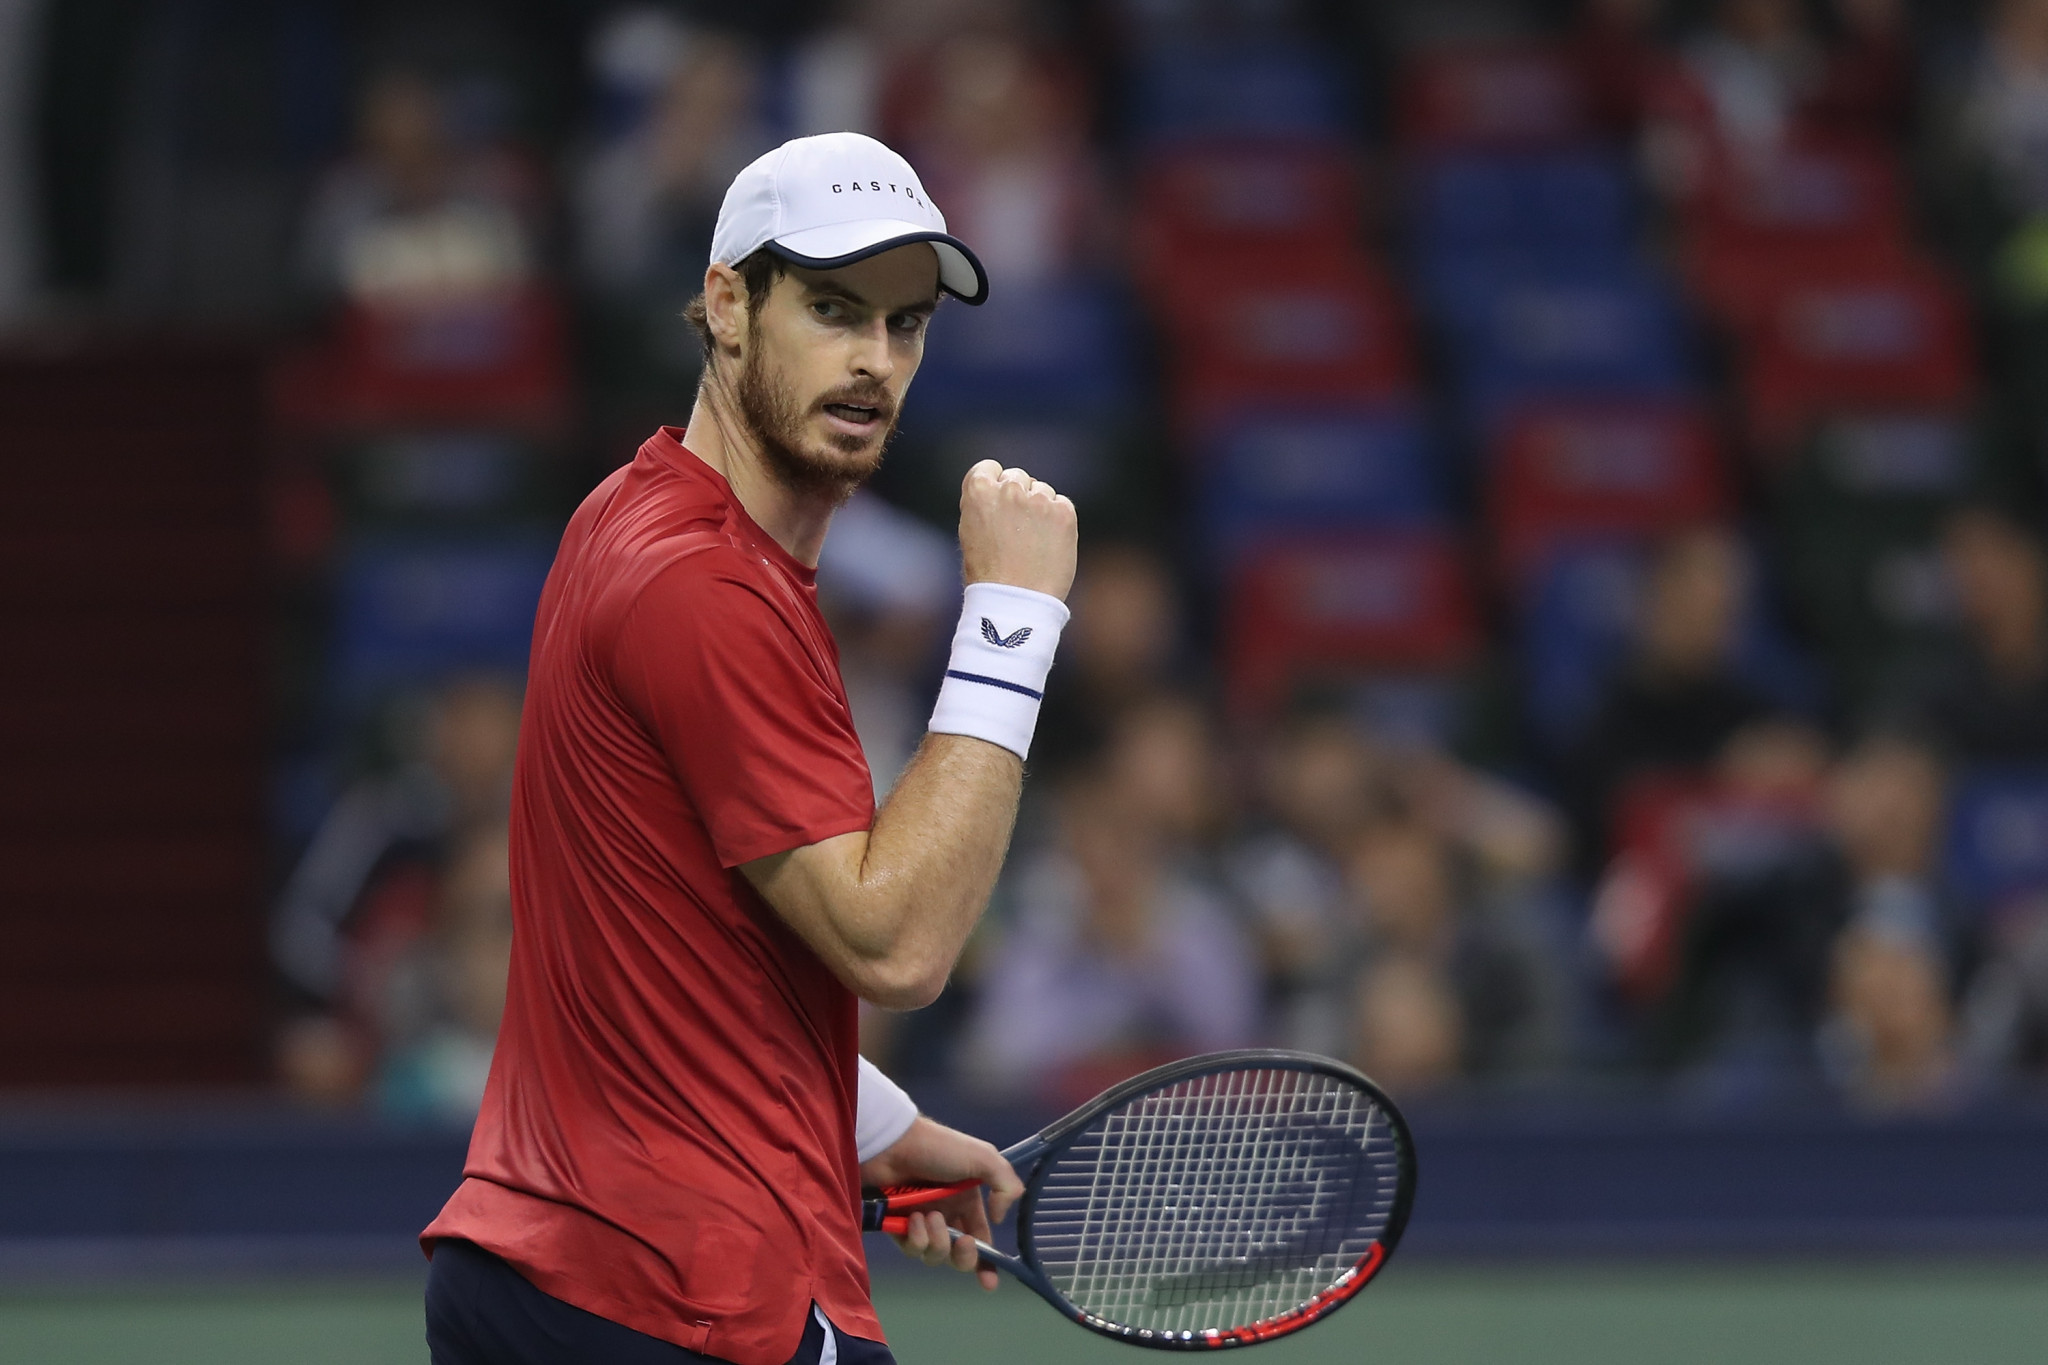 Murray through to second round of Shanghai Masters as singles comeback continues